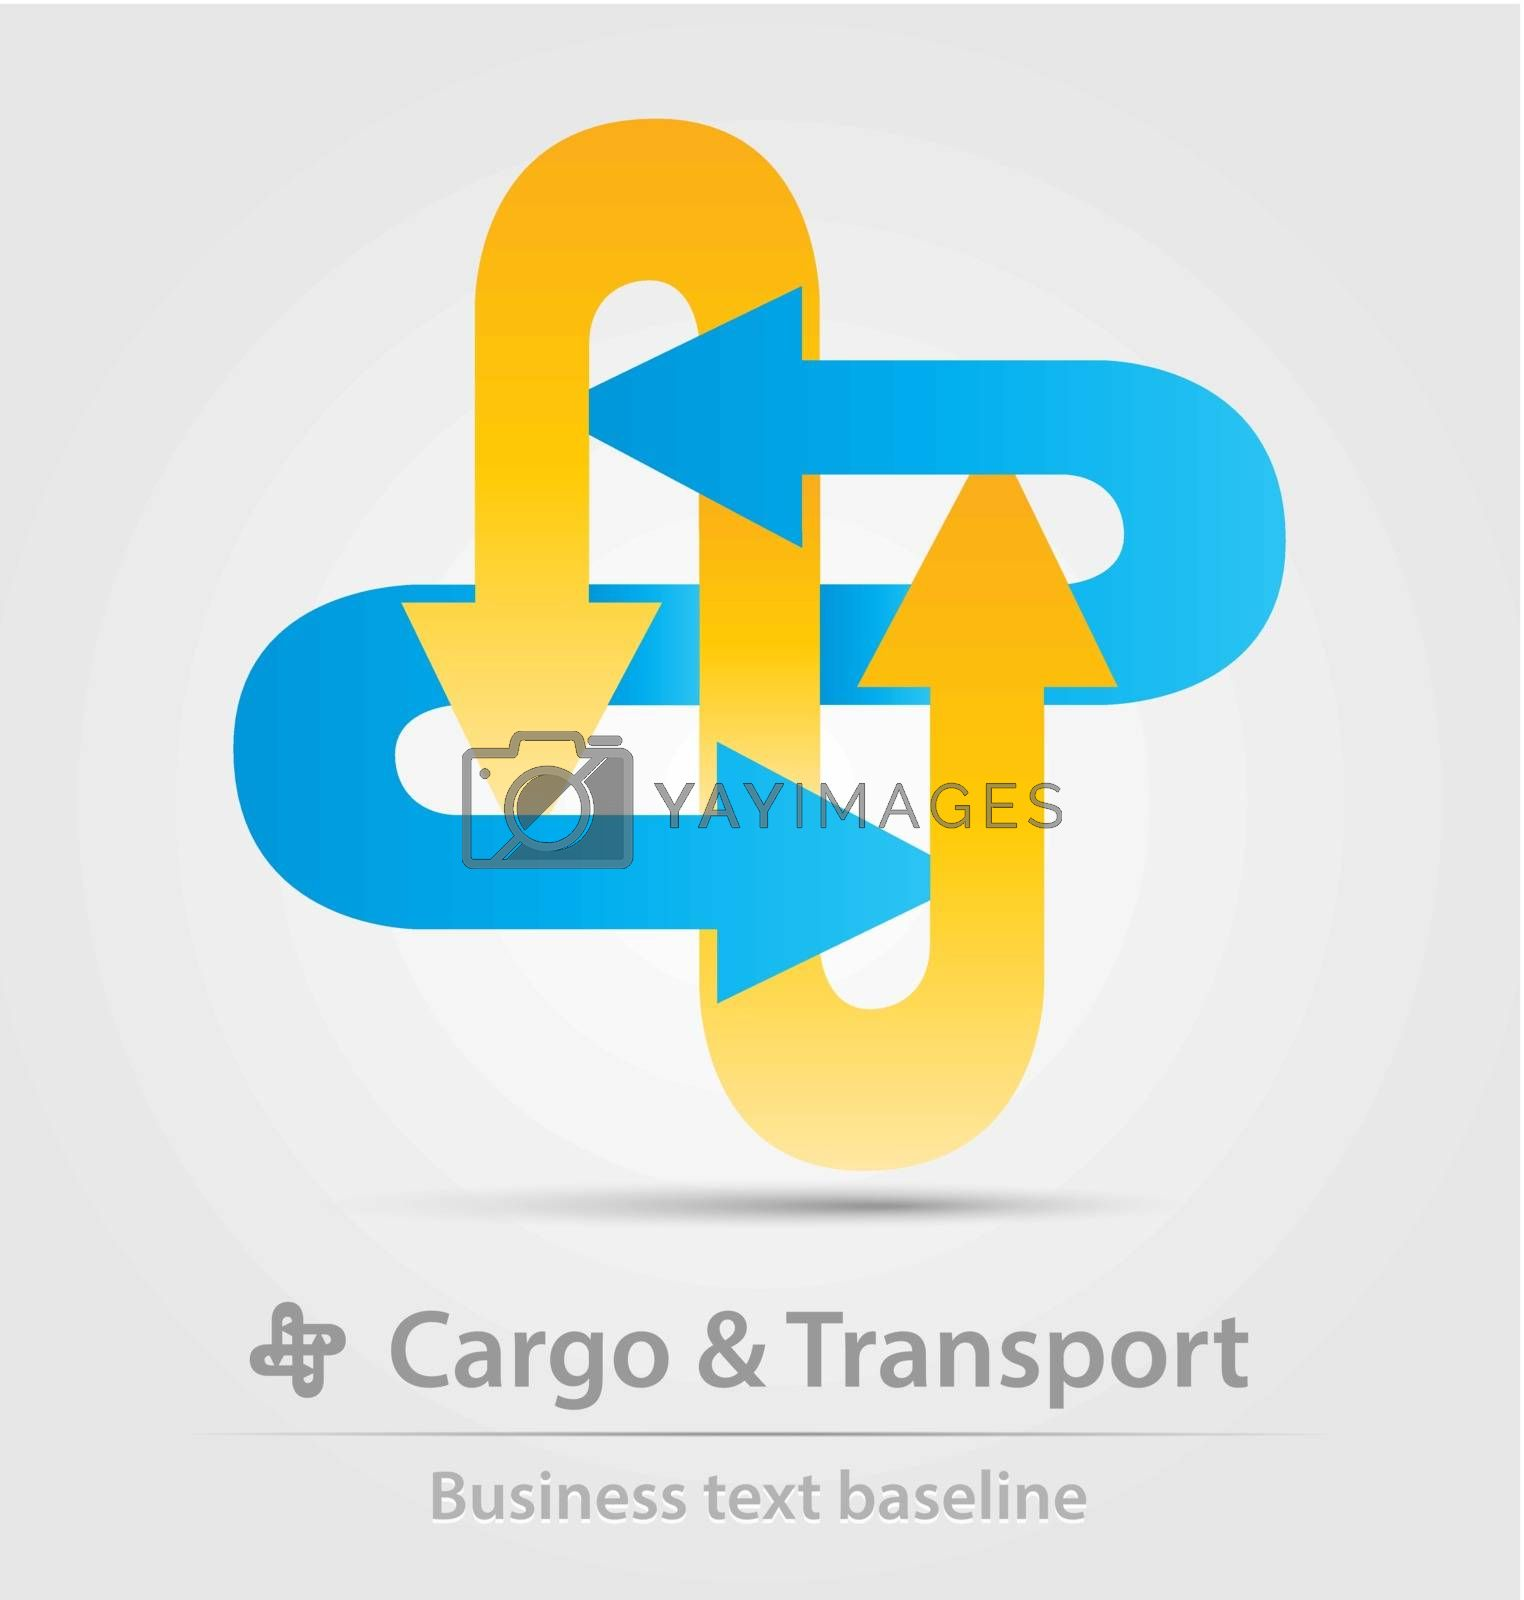 Cargo and transport business icon for creative design